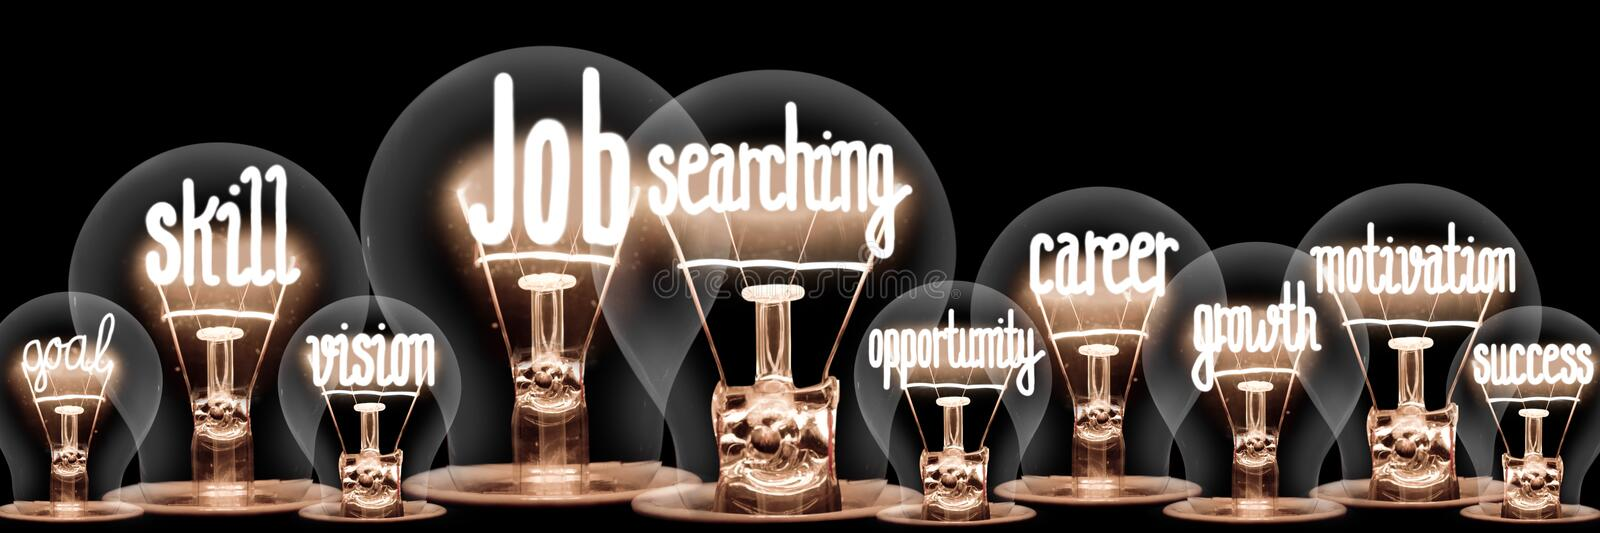 Light Bulbs with Job Searching Concept royalty free stock photo